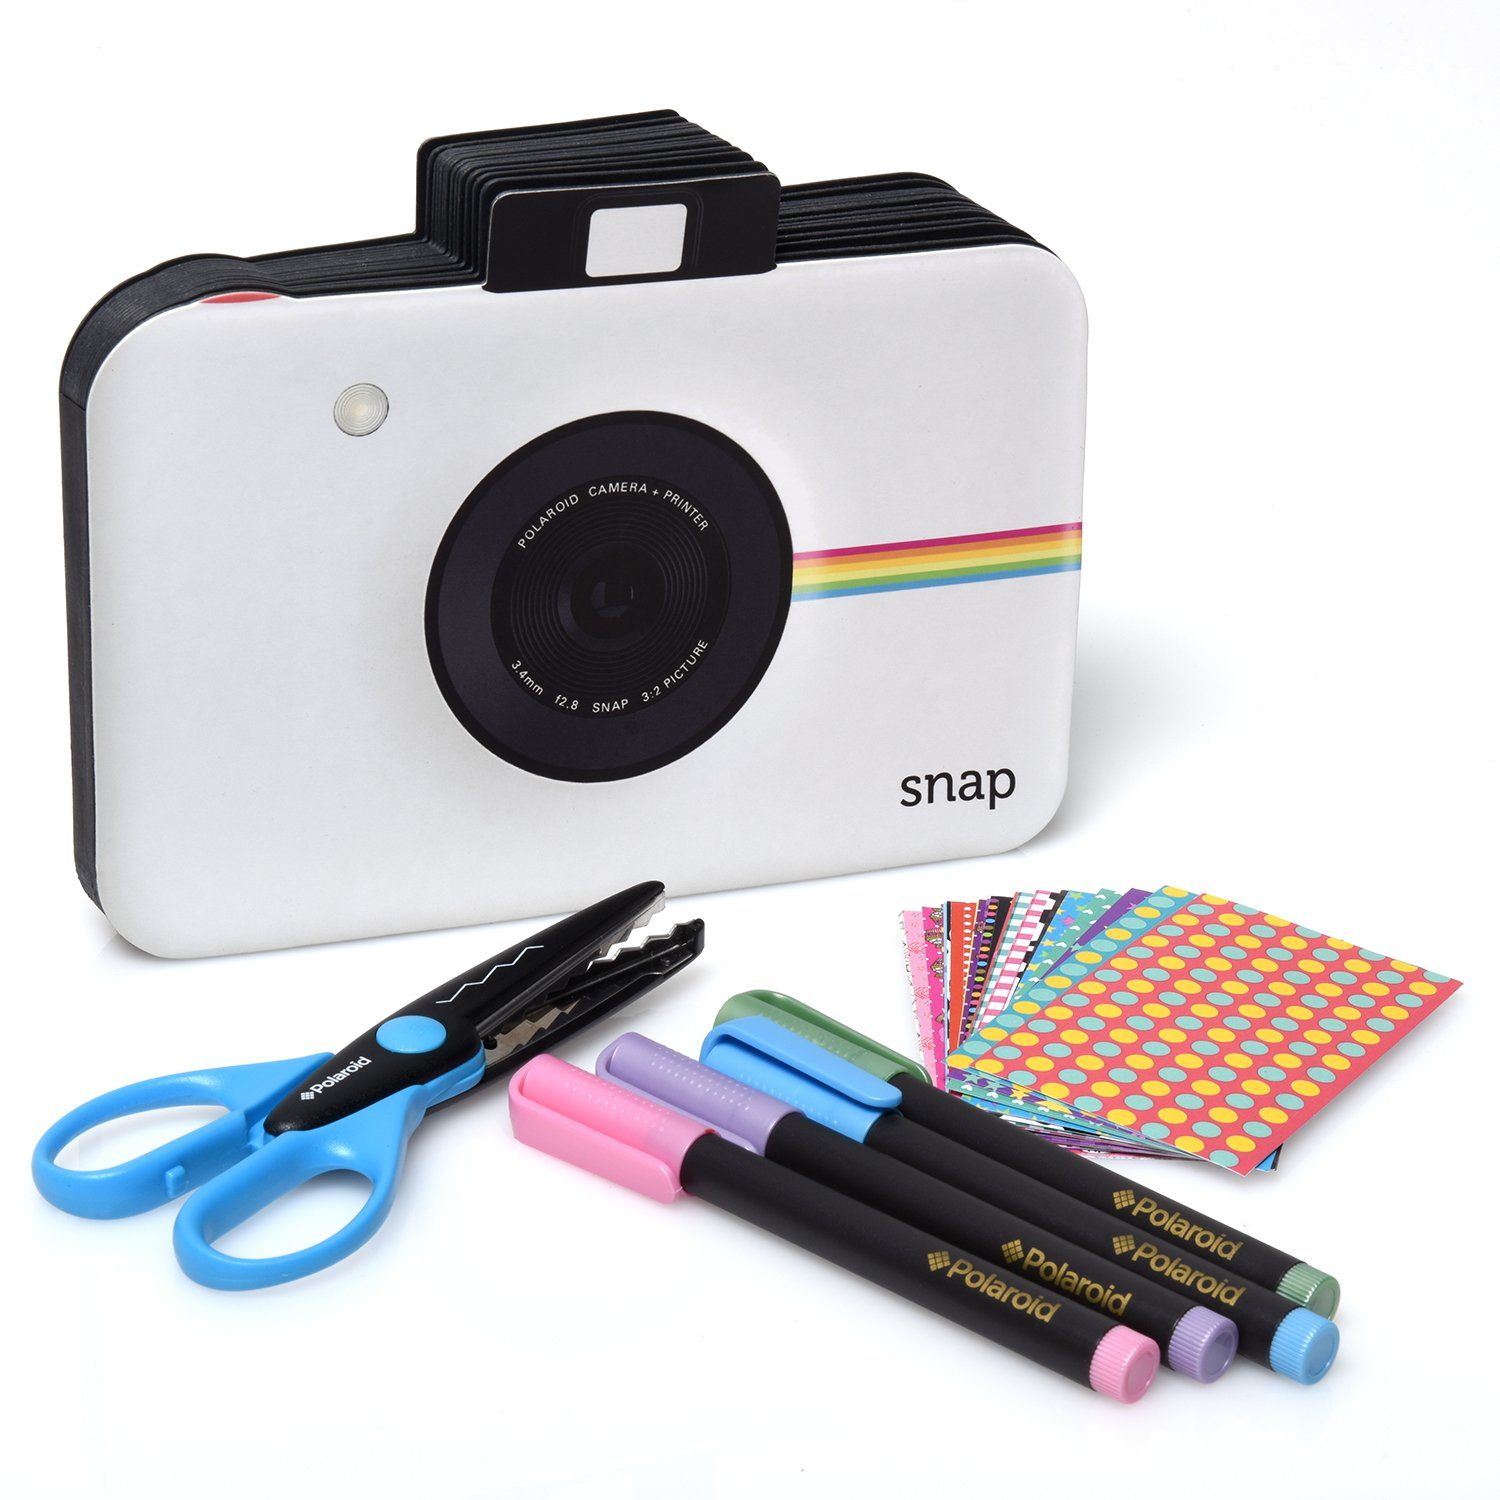 71JIyUy1eOL. SL1500  - Polaroid Snap special Function and Review